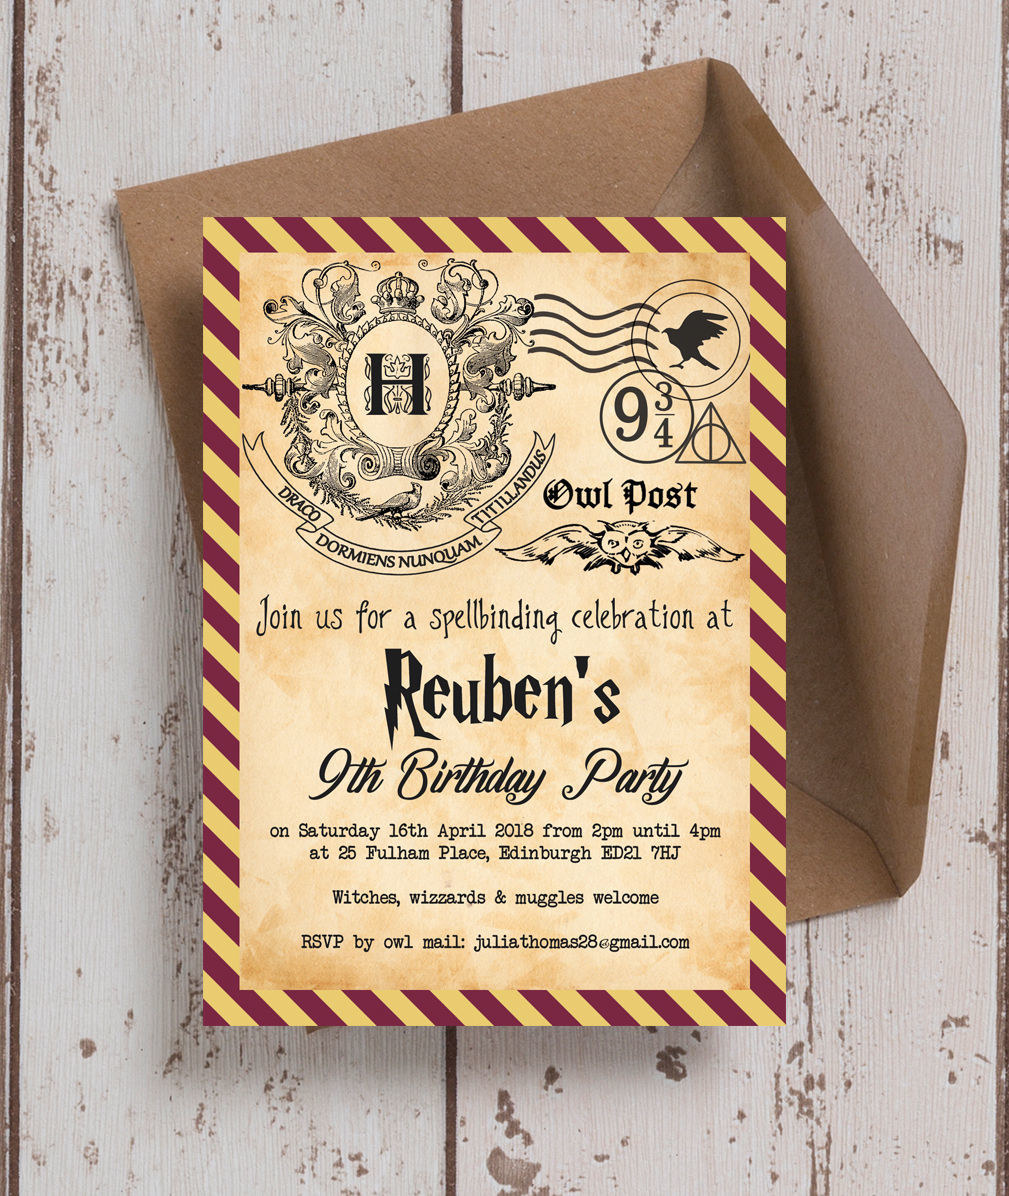 harry potter birthday invitation ideas ; WizardsWitchesInv2-harry-potter-witches-wizards-birthday-party-invitations-invites-printed-printable